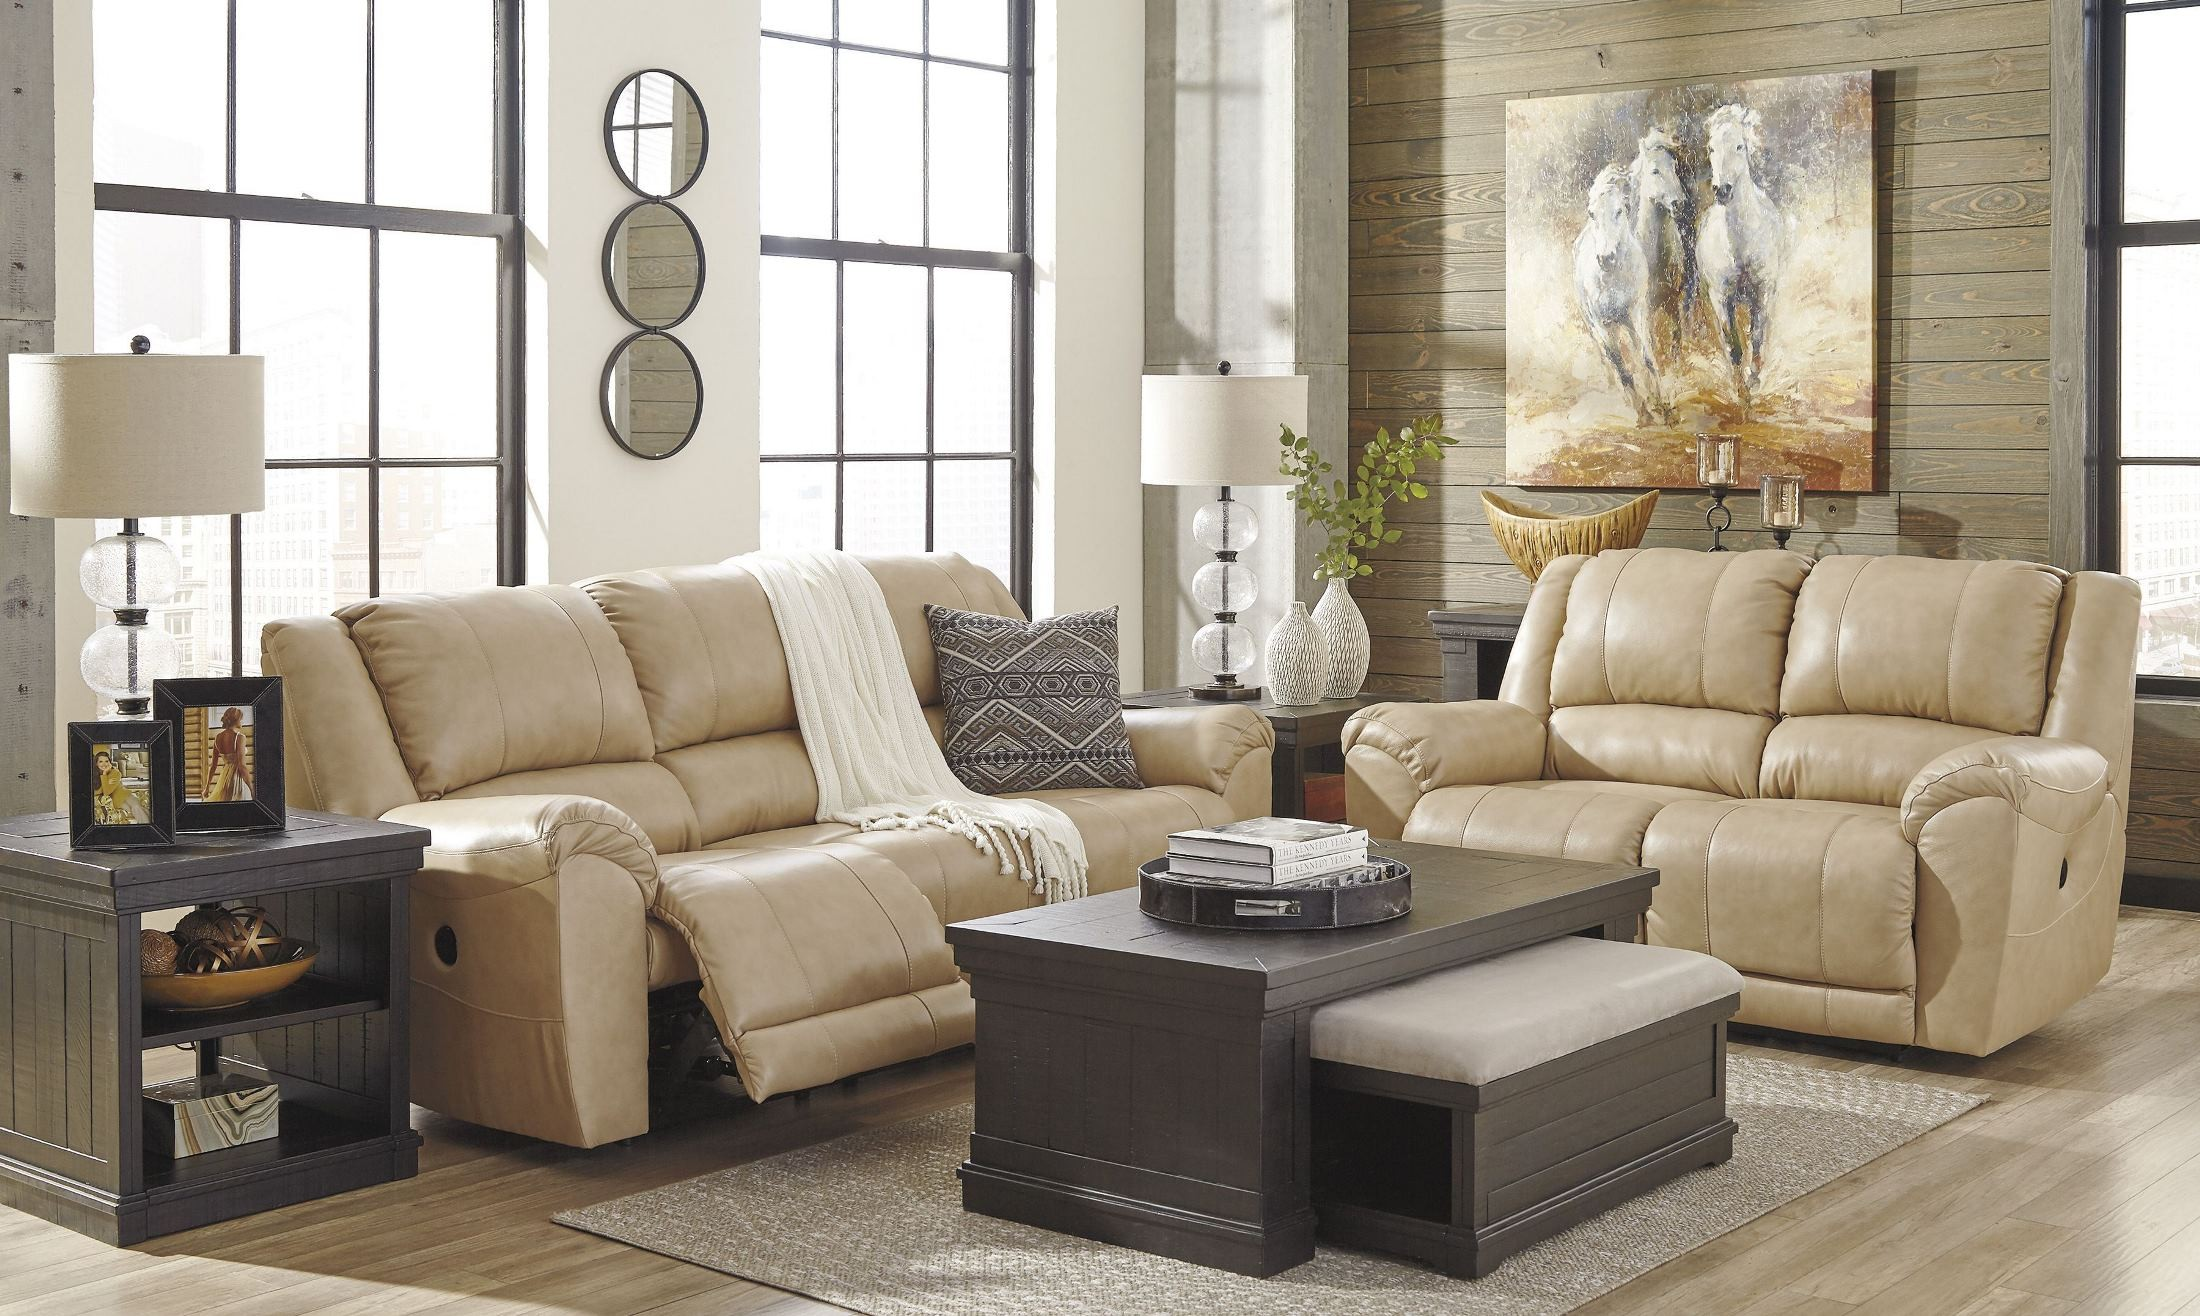 Yancy Galaxy Reclining Living Room Set 2920288 Ashley